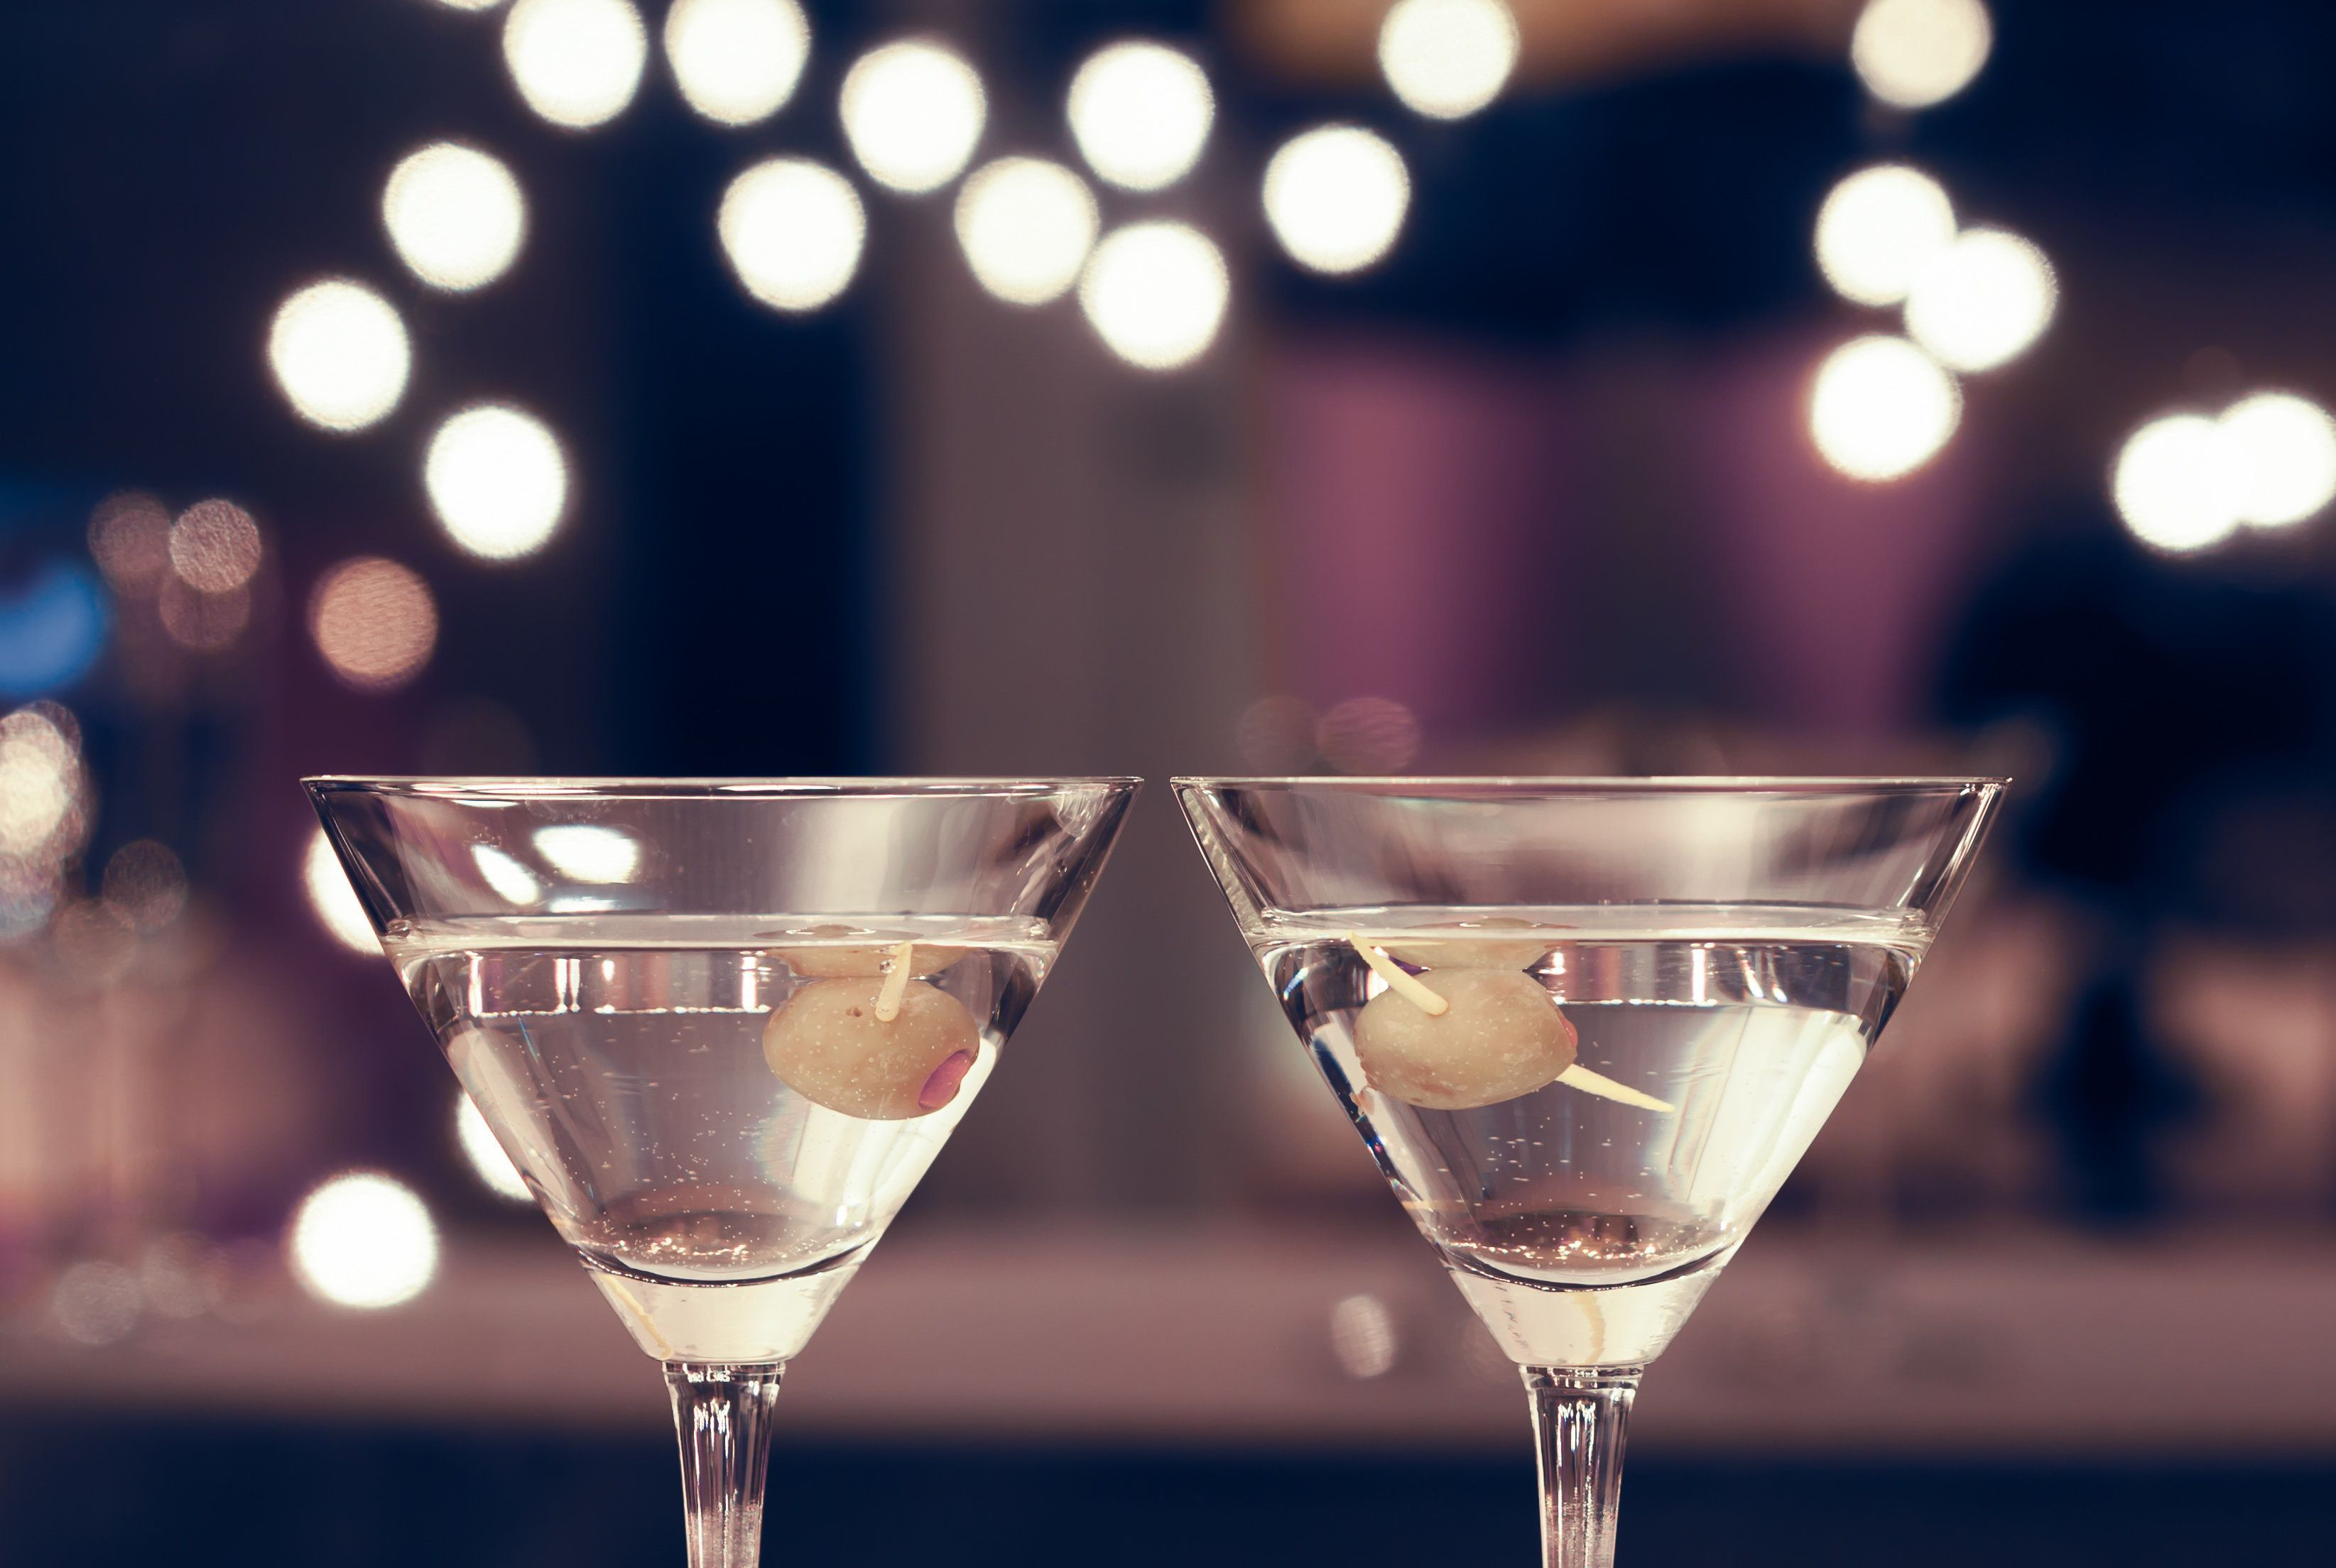 Photograph of two cocktail glasses in the fine dining restaurant setting.